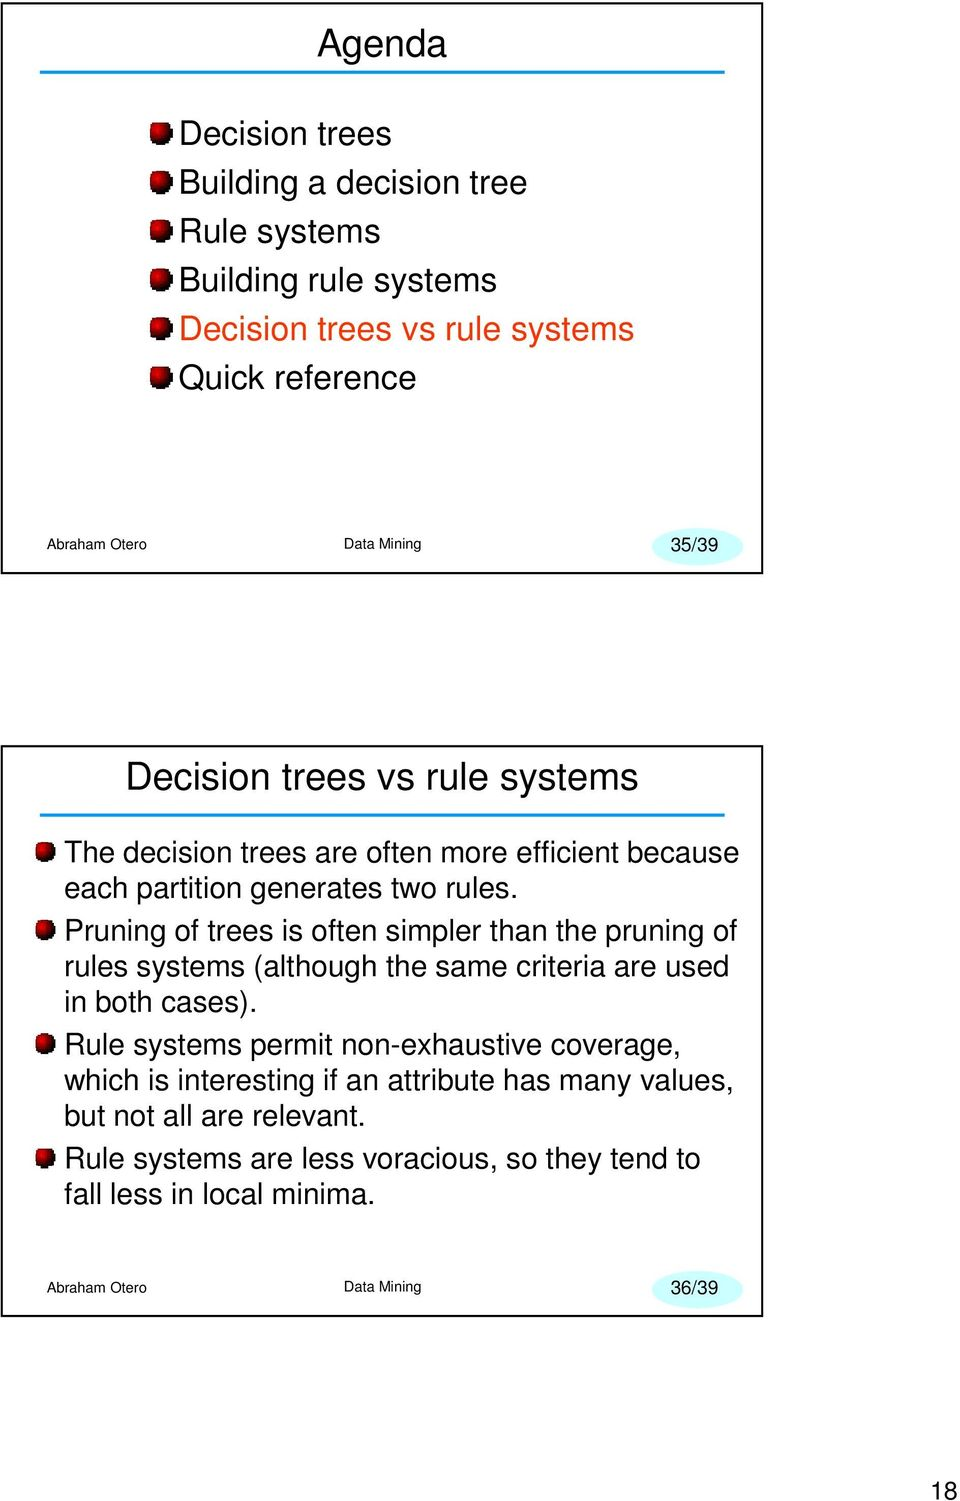 Pruning of trees is often simpler than the pruning of rules systems (although the same criteria are used in both cases).